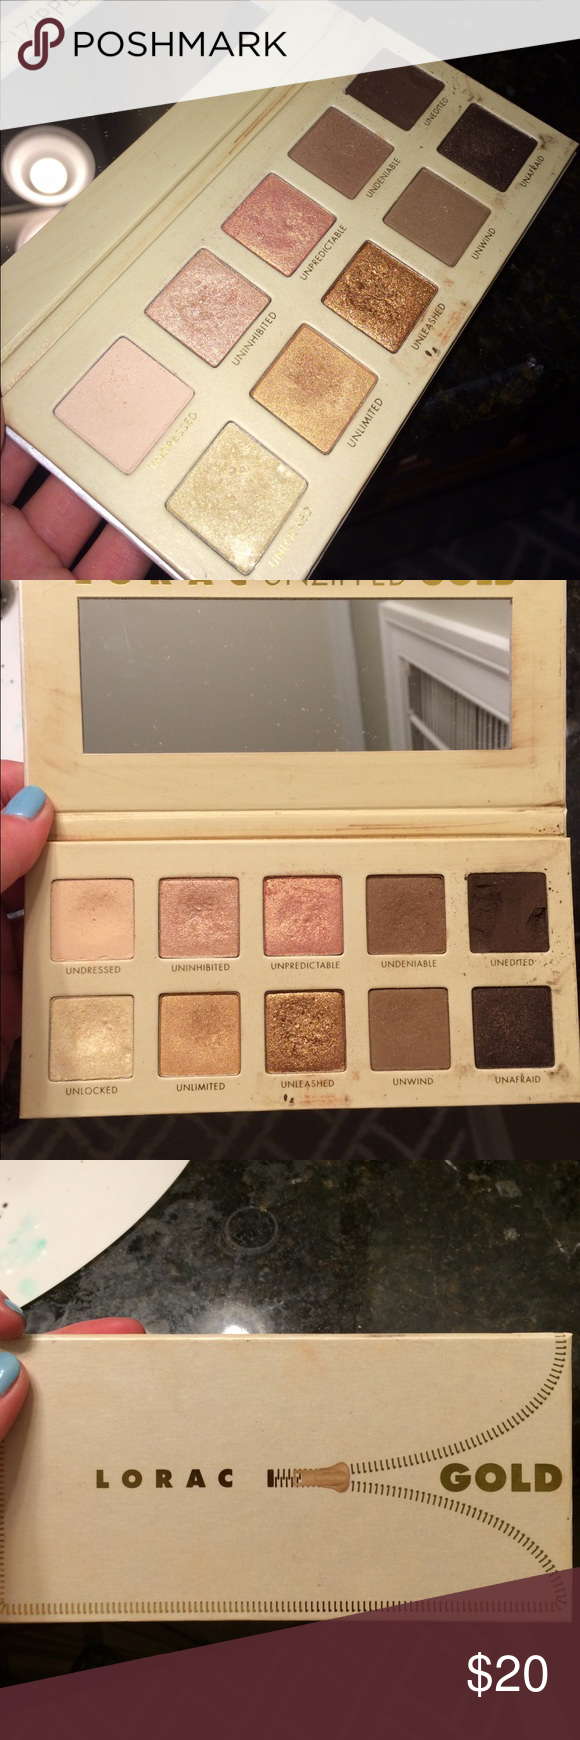 Lorac unzipped gold eyeshadow palette Used a few times, very rarely. Super pigmented, colors go on very nicely and stay all day. Urban Decay Makeup Ey…